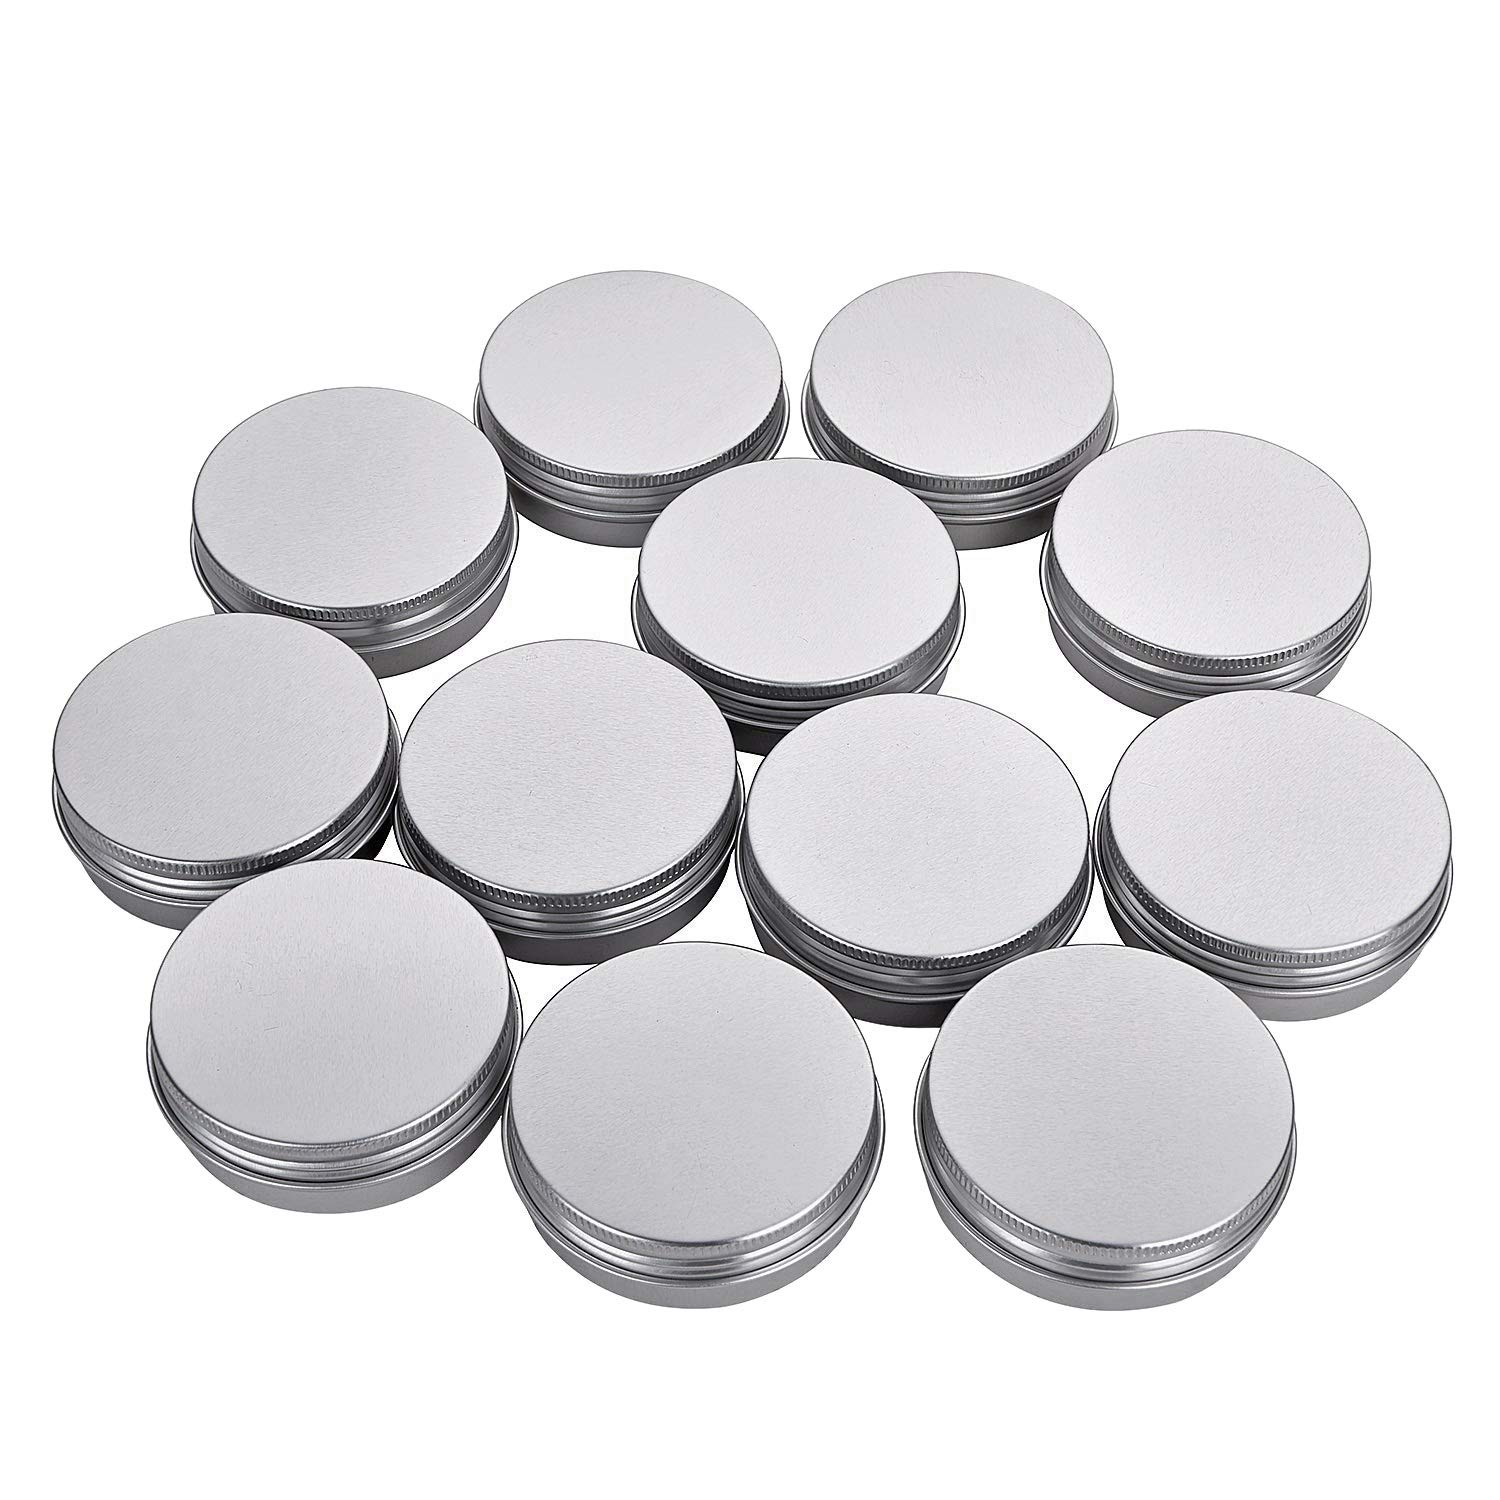 Fizz 2 Oz Aluminum Tins Cans 18 Pack Round Storage Jars Containers Screw Lids Metal Tins Travel Tins Cosmetic Refillable Containers(Silver)